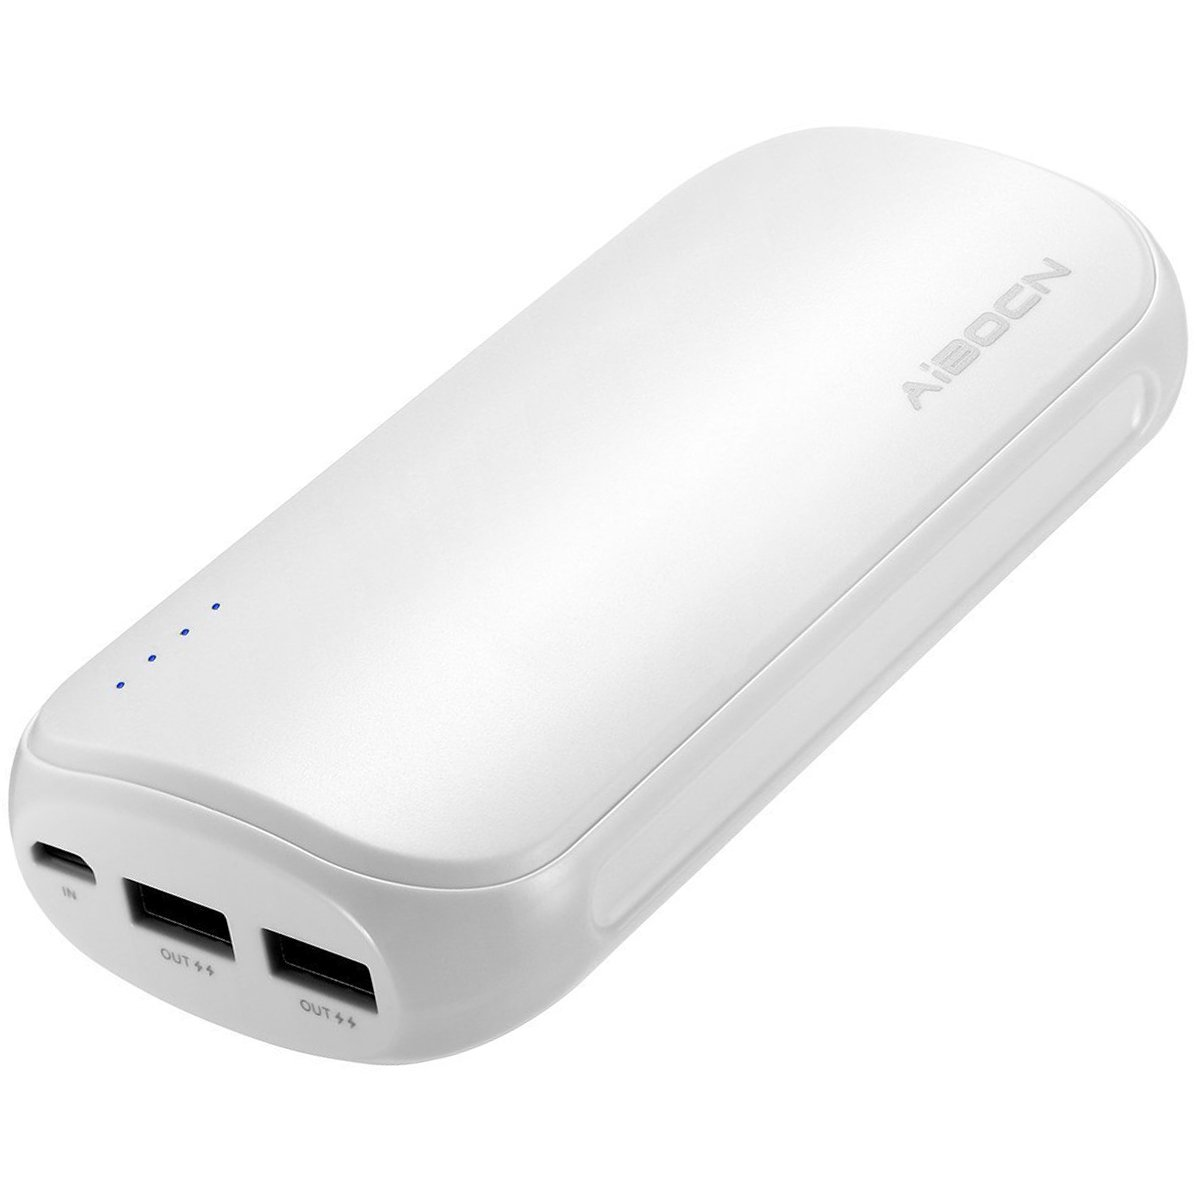 Aibocn Power Bank 16,000mAh Portable Charger External Battery with Fast Charging Technology for iPhone iPad Samsung Galaxy and More, White PC882-16000-3